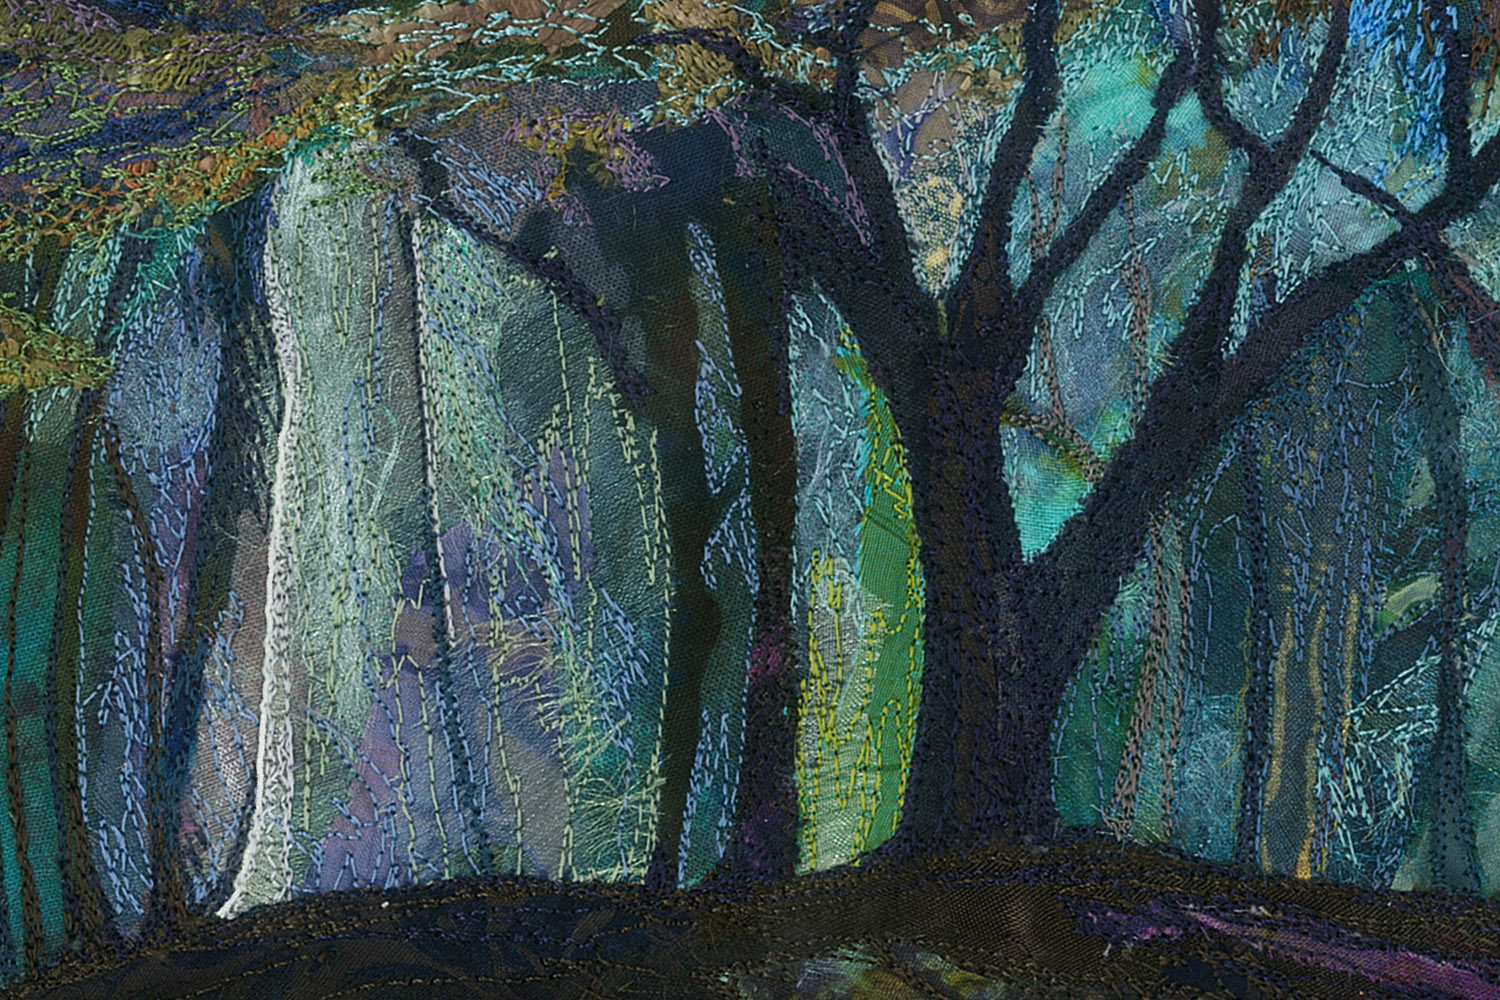 Enchanted Forest detail